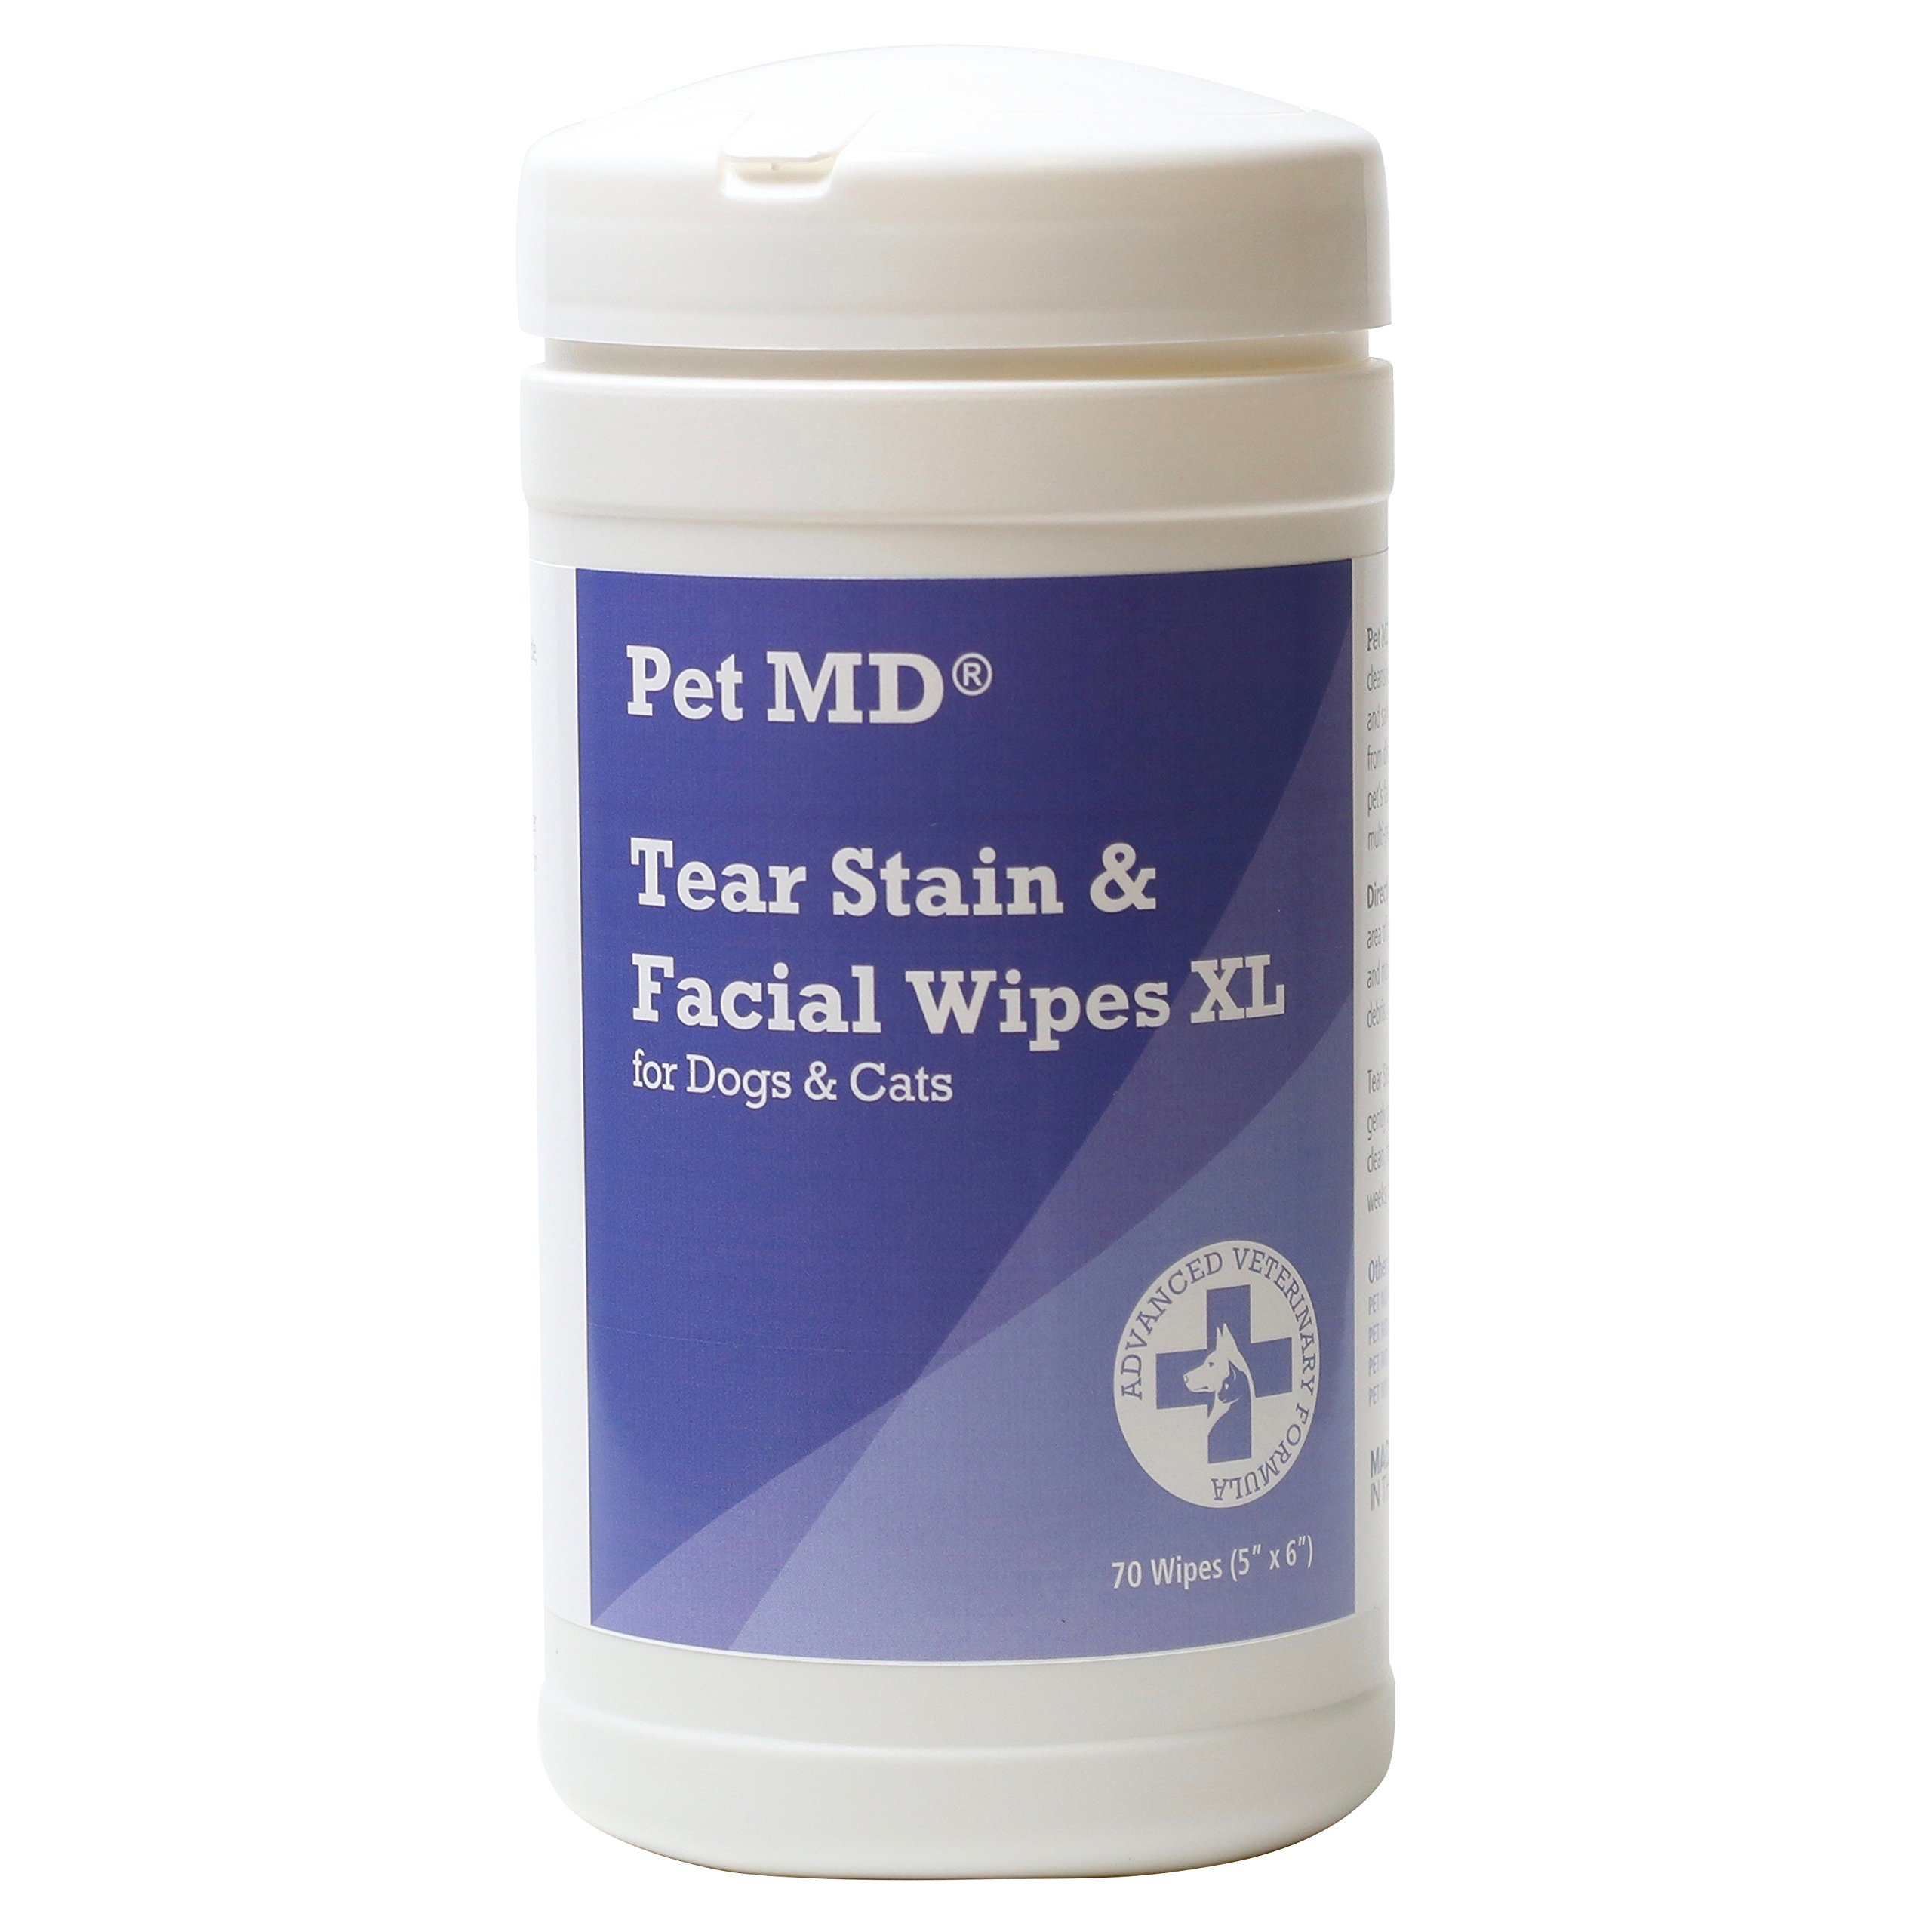 Pet MD Tear Stain Remover Facial and Eye Wipes for Dogs and Cats - Removes Crust, Mucus Tear and Saliva Stains - 70 XL Wipes